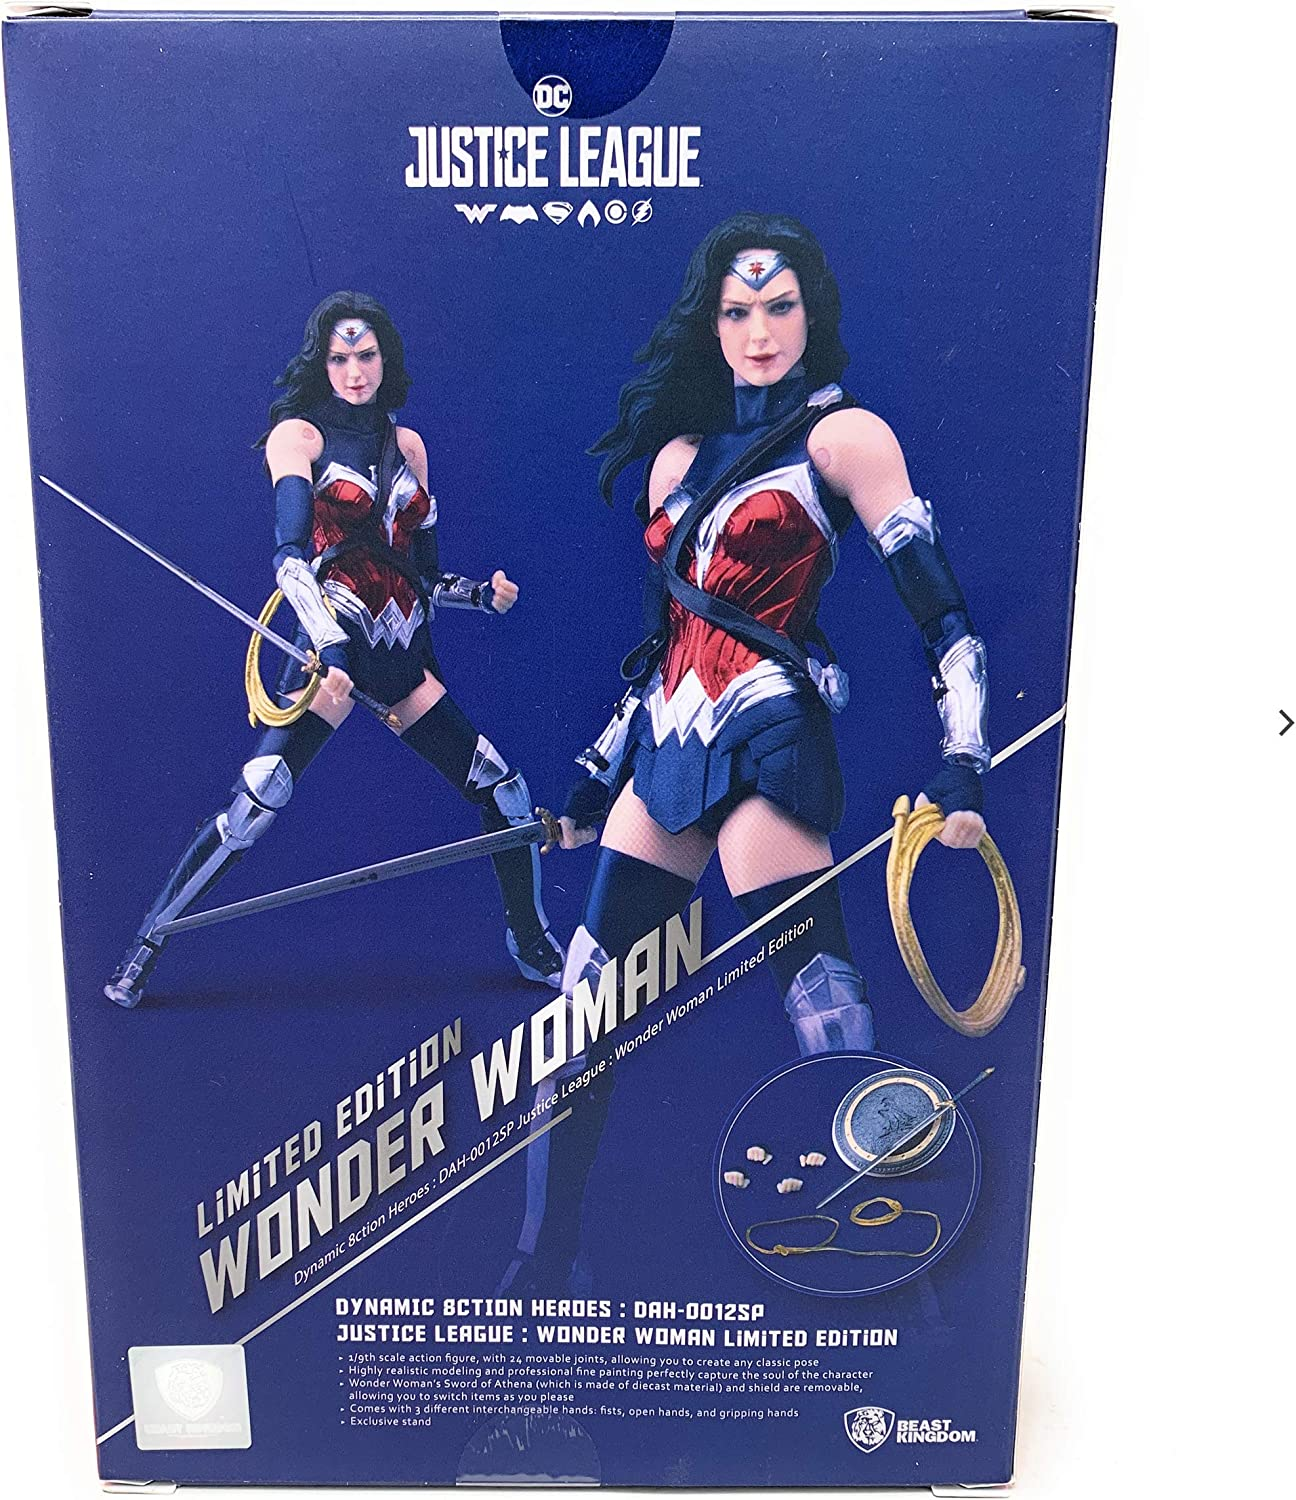 Beast Kingdom Dynamic 8ction Heroes Special Color Ver. - 2019 NYCC Exclusive Wonder Woman